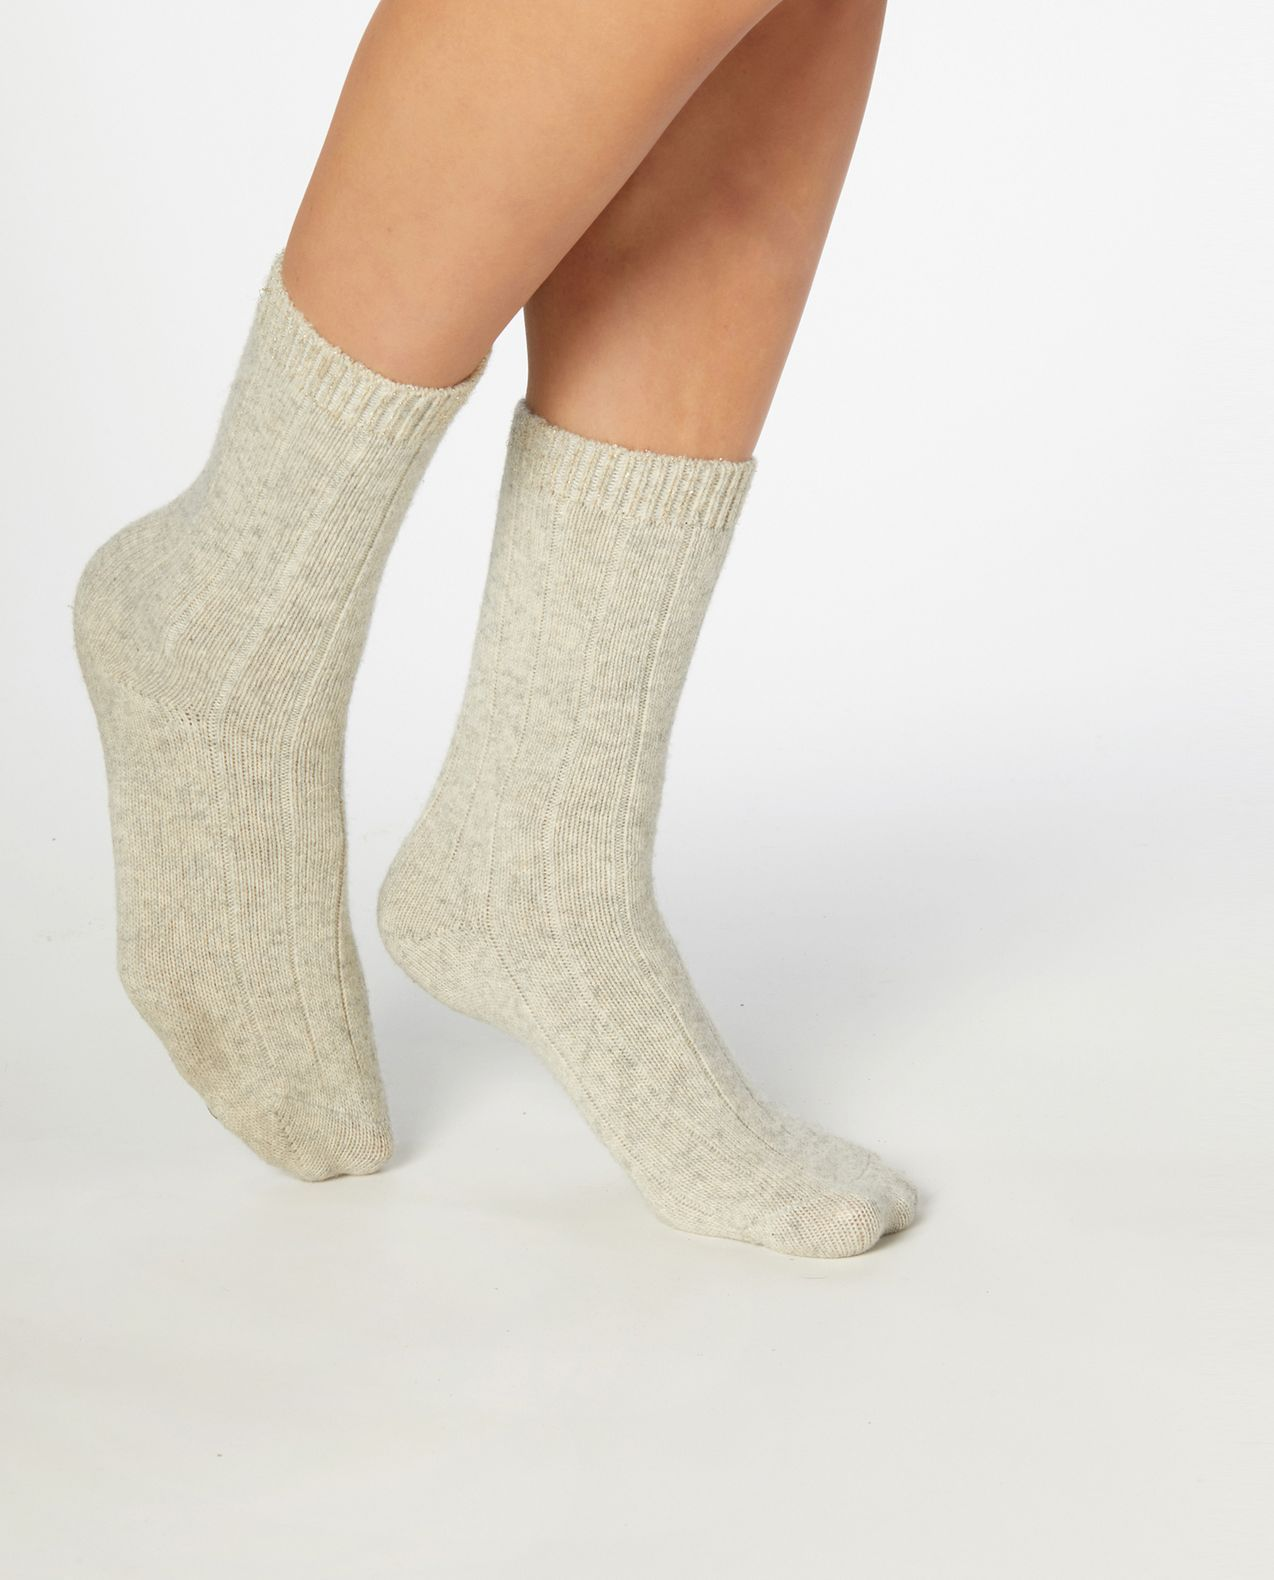 Chaussette cocooning cachemire - CAMILA